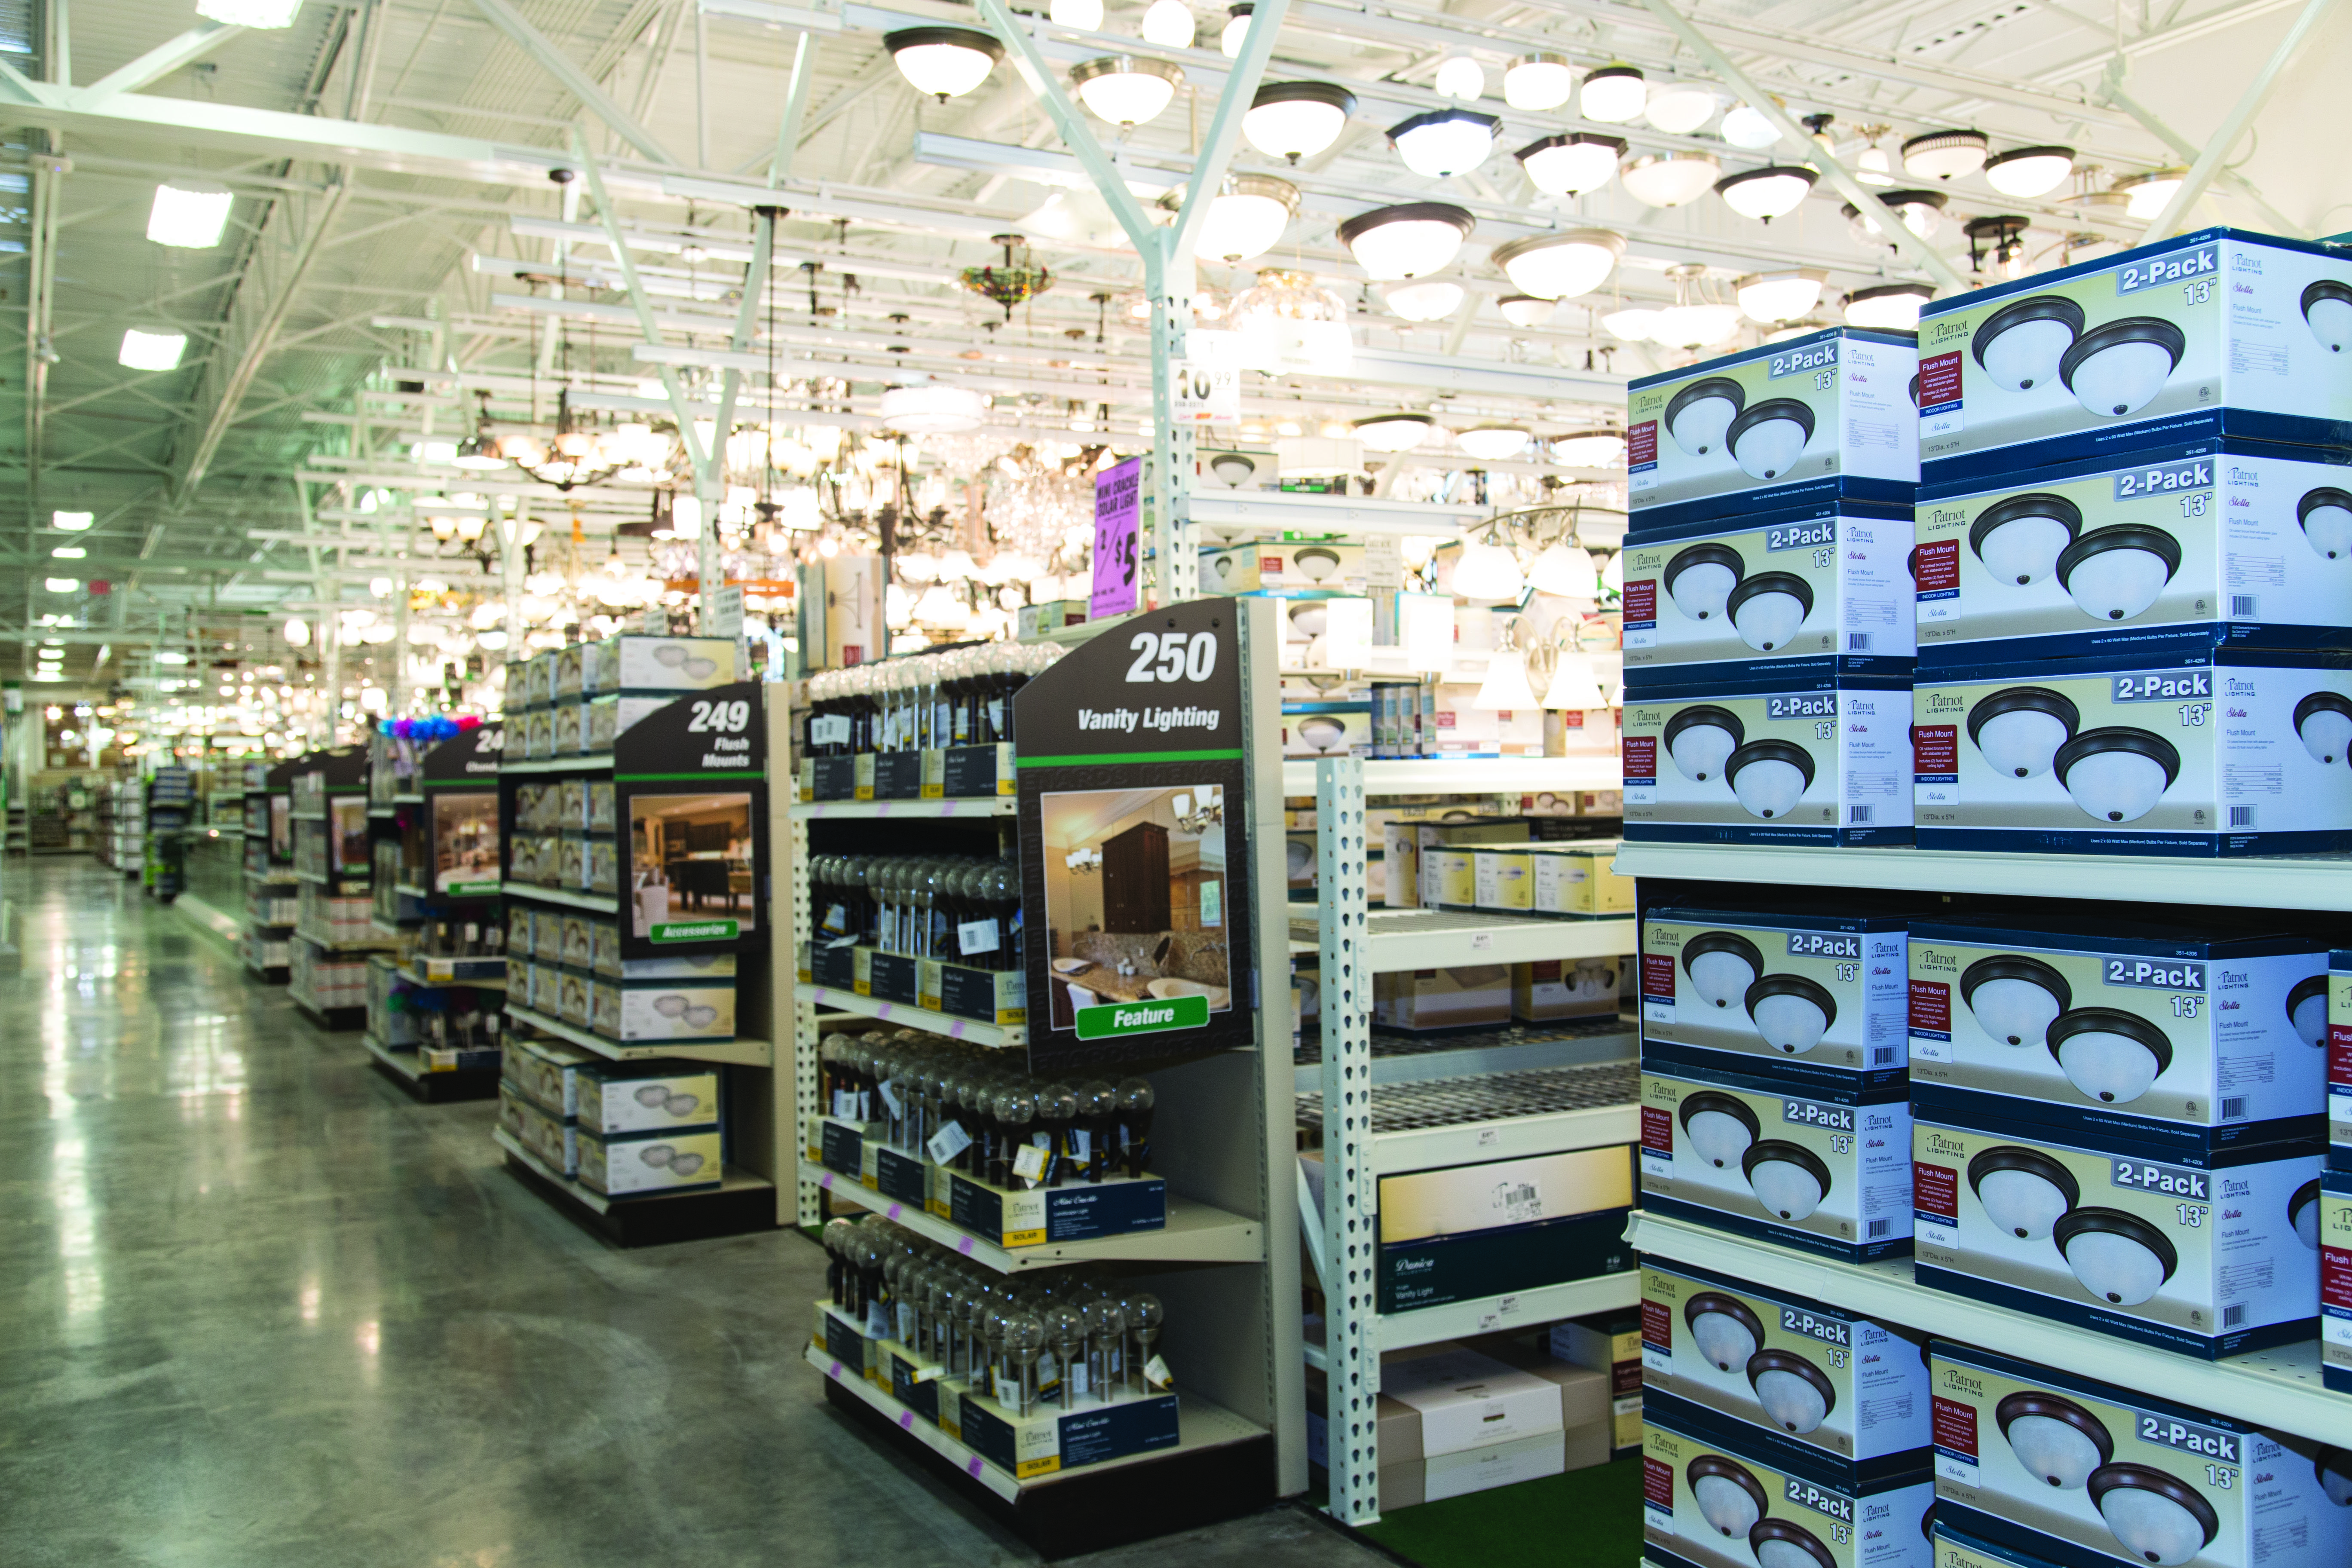 The Lighting Display And Electrical Selection At Your Local Menards Store Is Second To None When You Need Fixtur Lighting Ceiling Fans Menards Menards Store